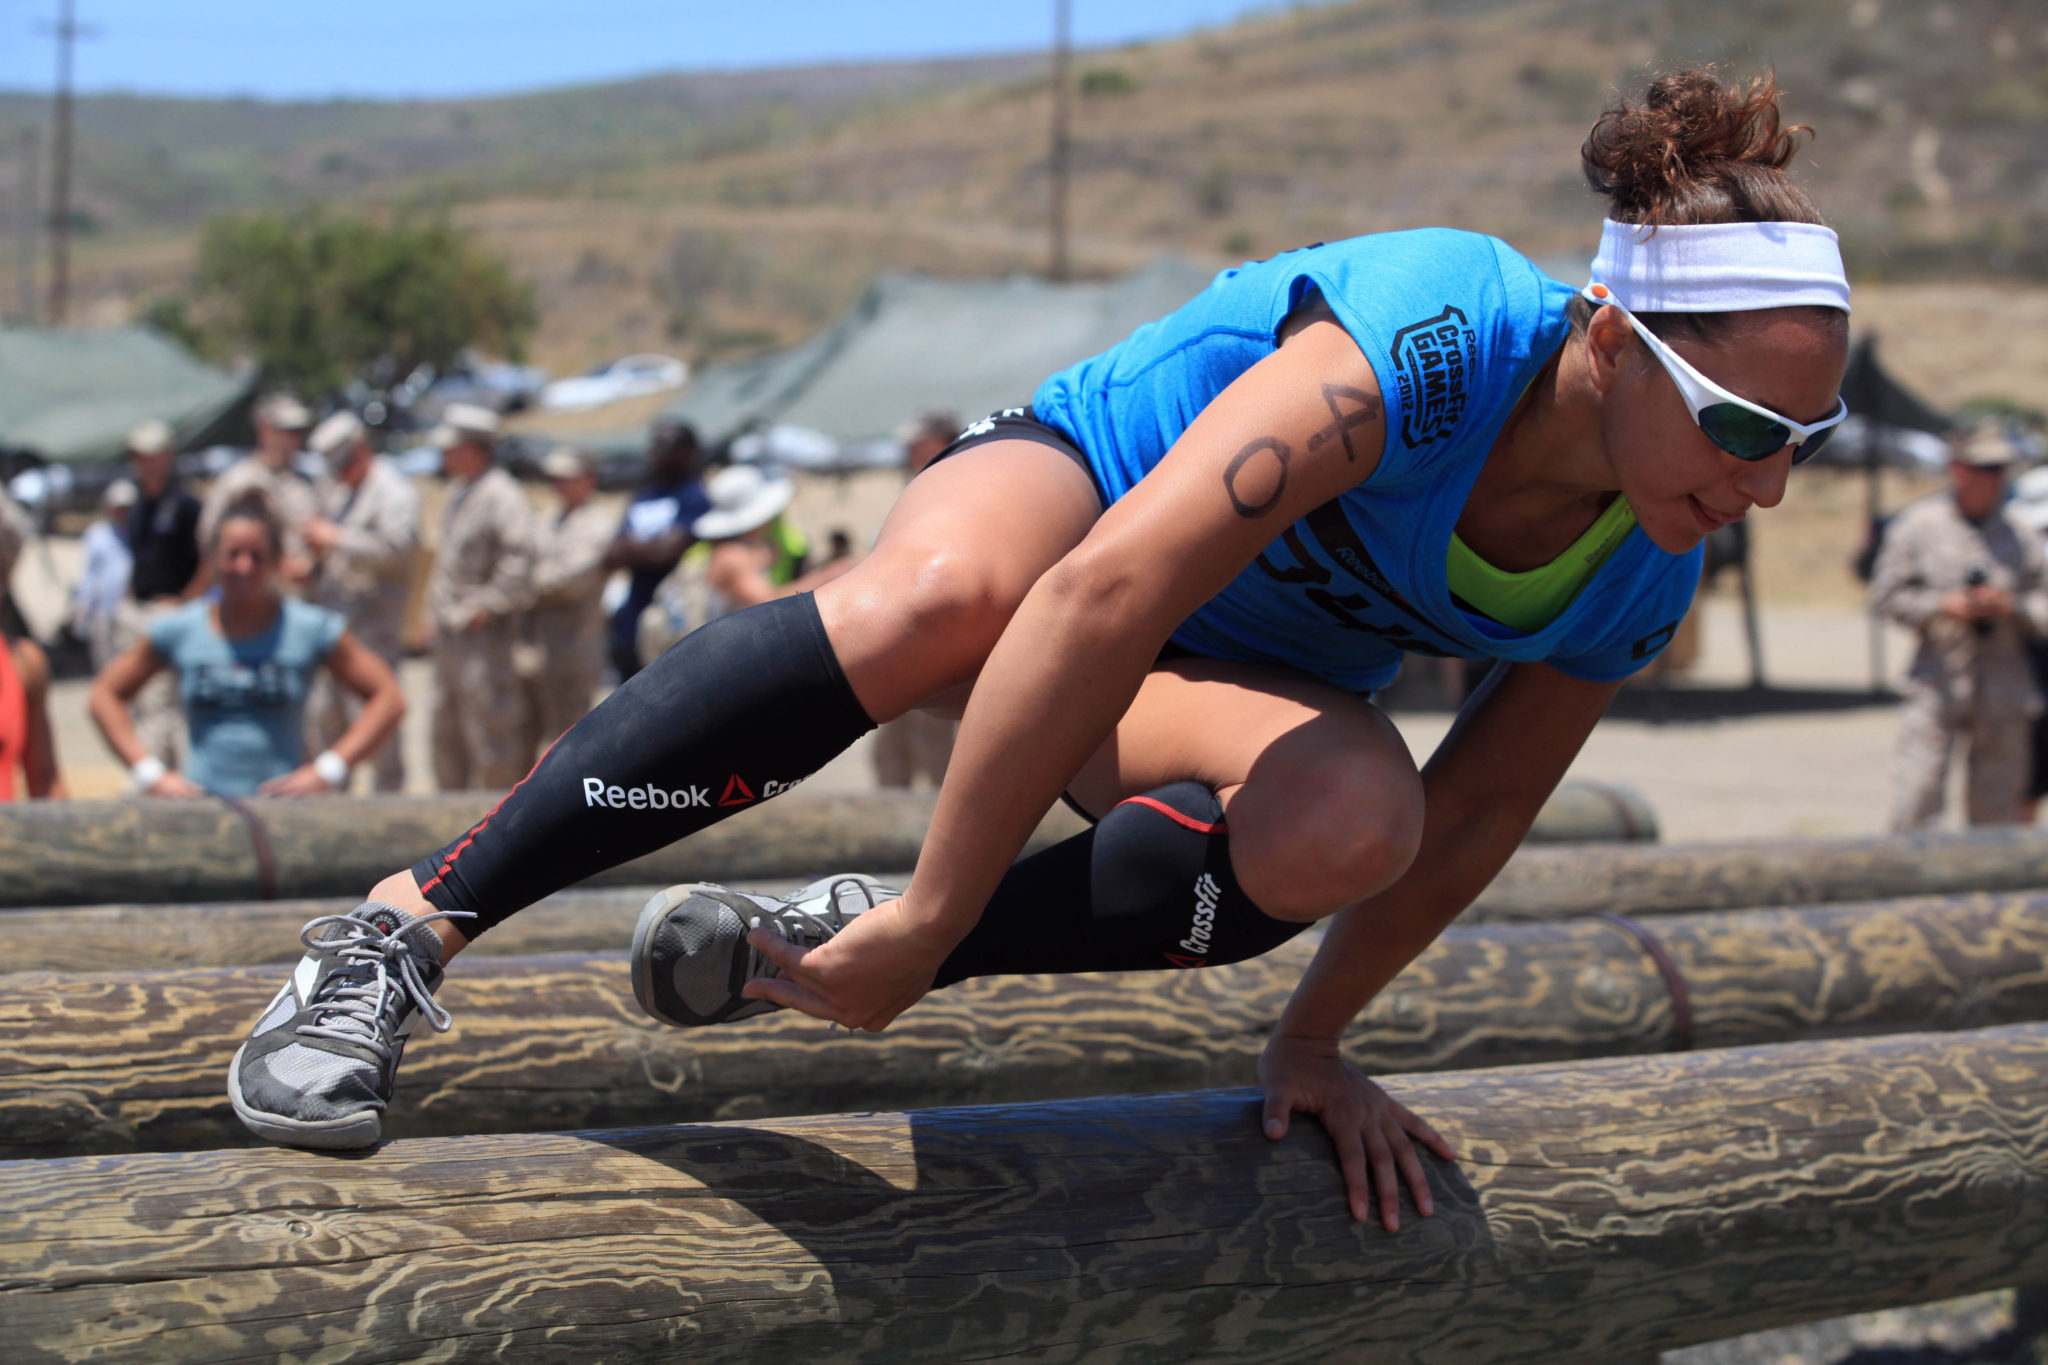 The Crossfit Off Season: Time to Fix These 3 Weaknesses - Tier Three